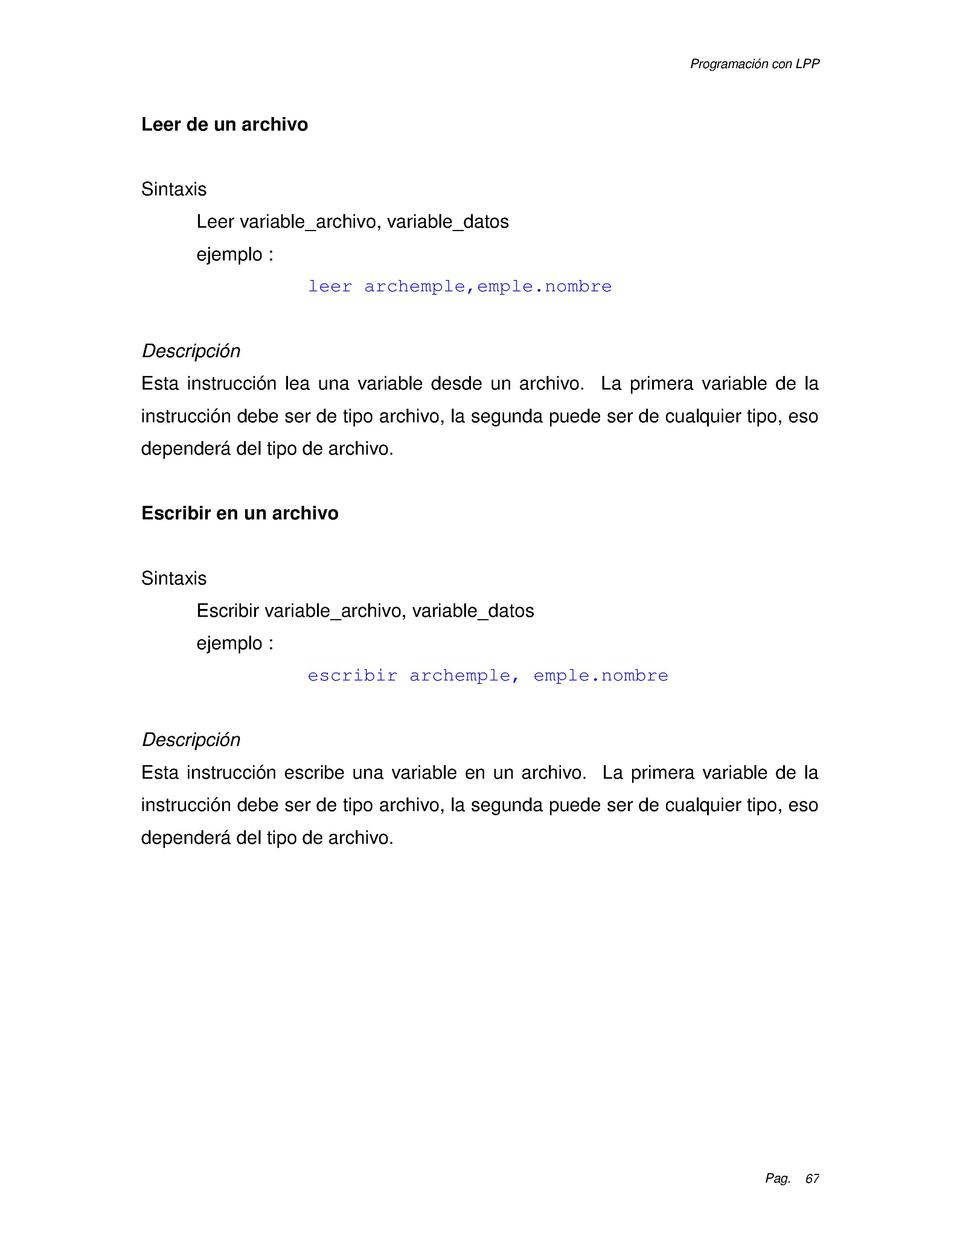 Programaci  n con LPP  Leer de un archivo  Sintaxis Leer variable_archivo, variable_datos ejemplo   leer archemple,emple.n...